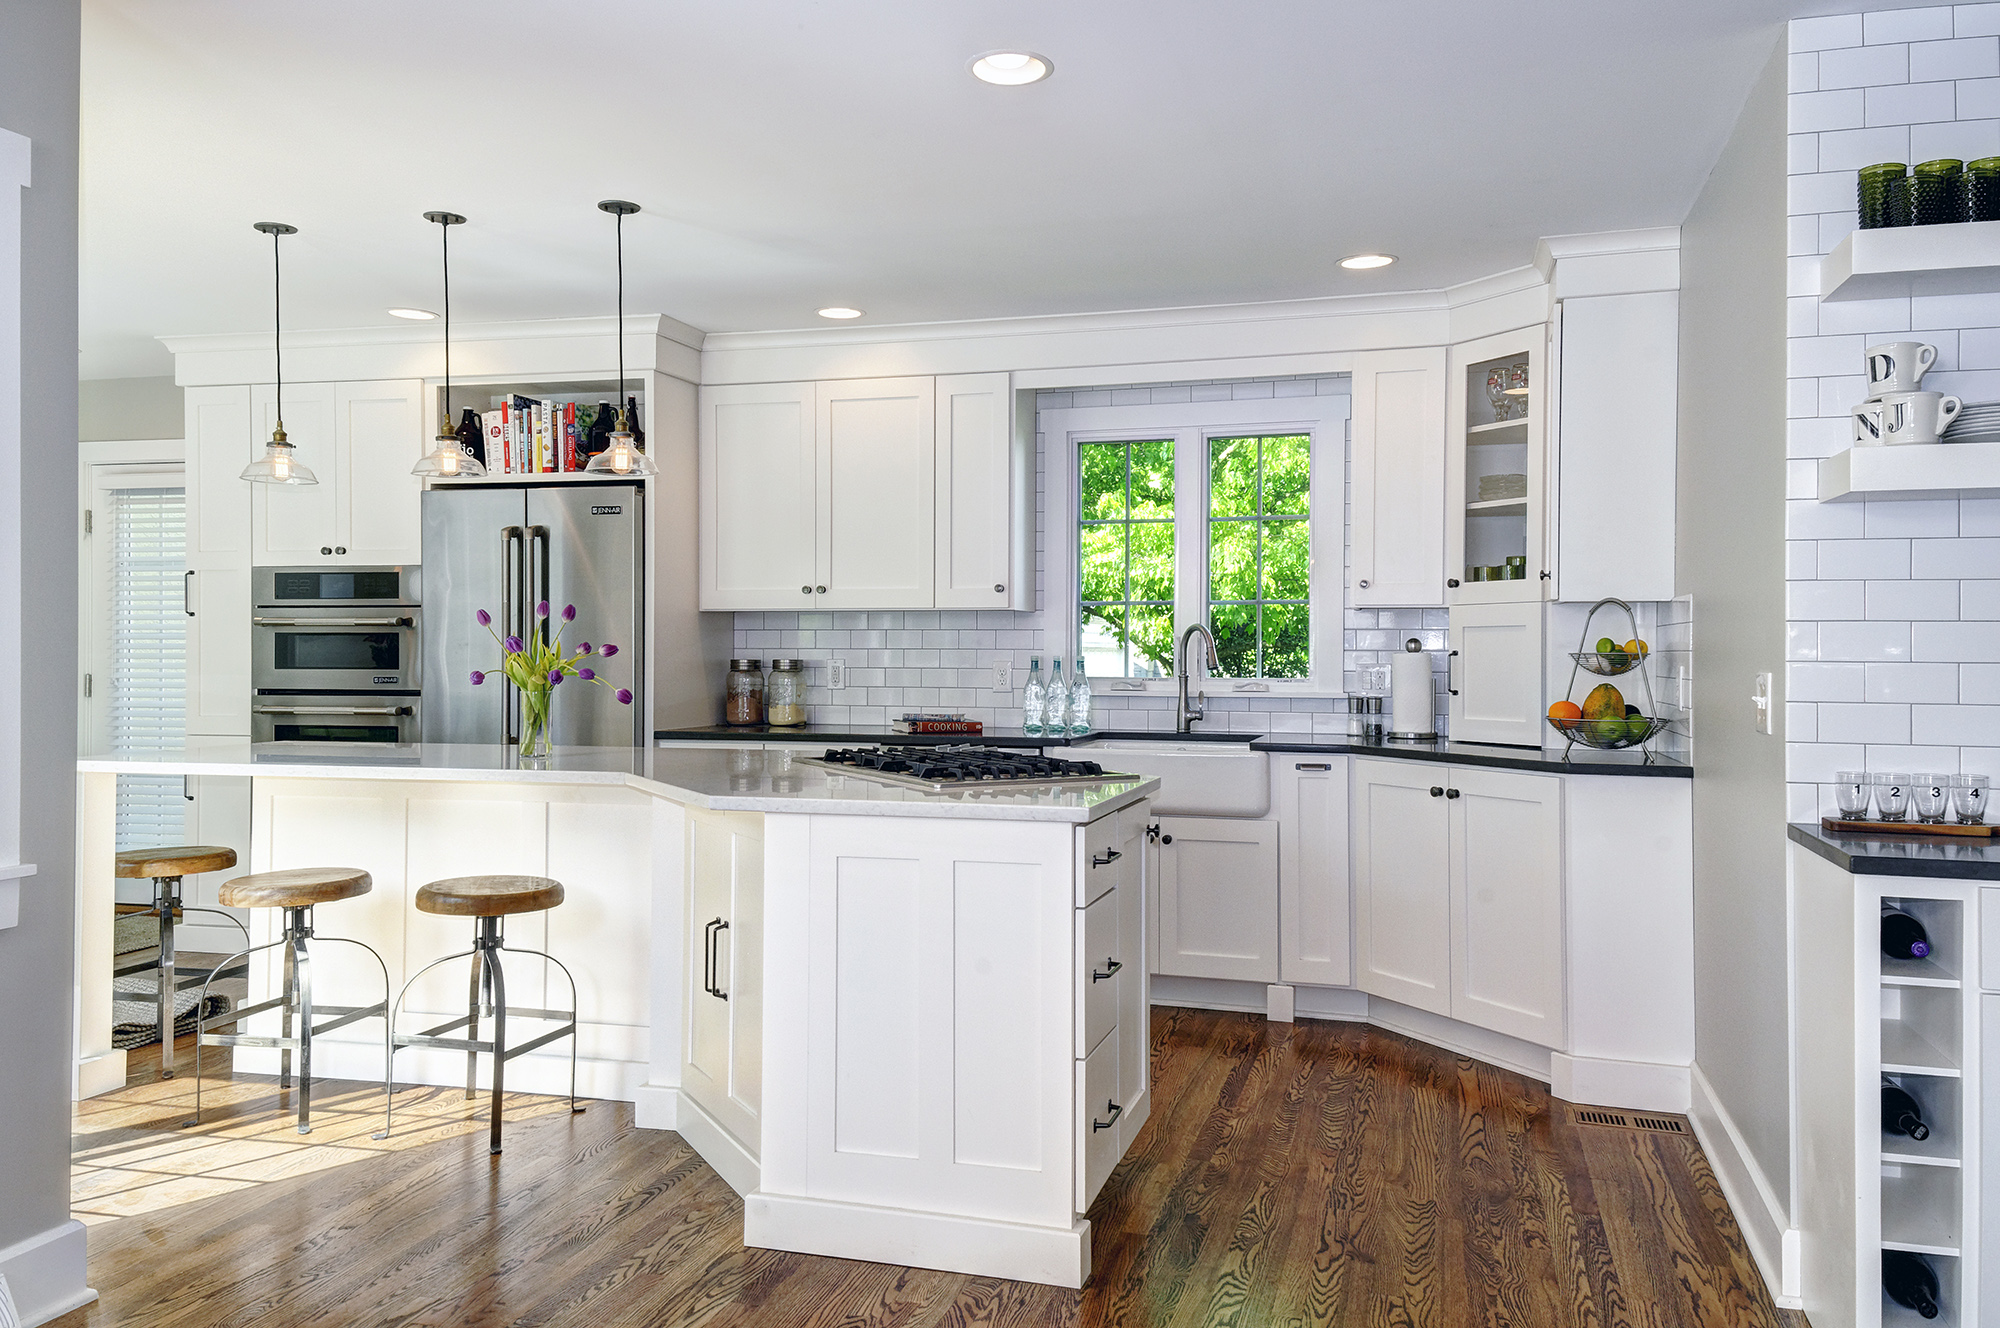 Kitchen Remodeling in Columbus: 7 Beautiful Kitchen ... on ideas to clean kitchen, ideas basement kitchen, ideas to design a kitchen, ideas to remodel kitchen, ideas to paint kitchen,